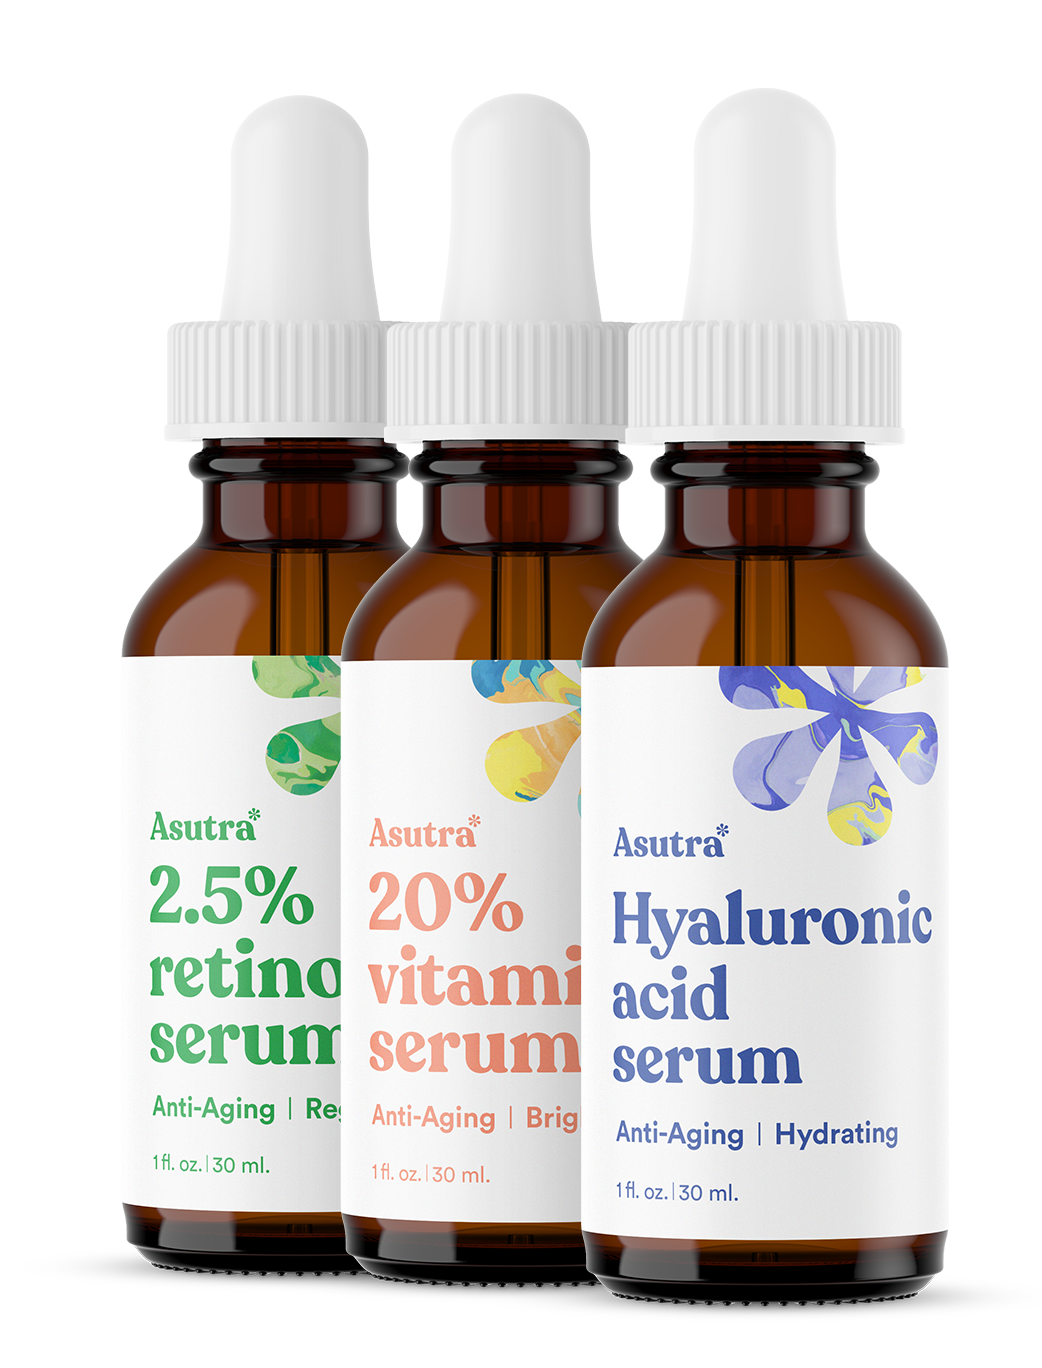 Anti-Aging Serum Variety Set, 3 Bottles